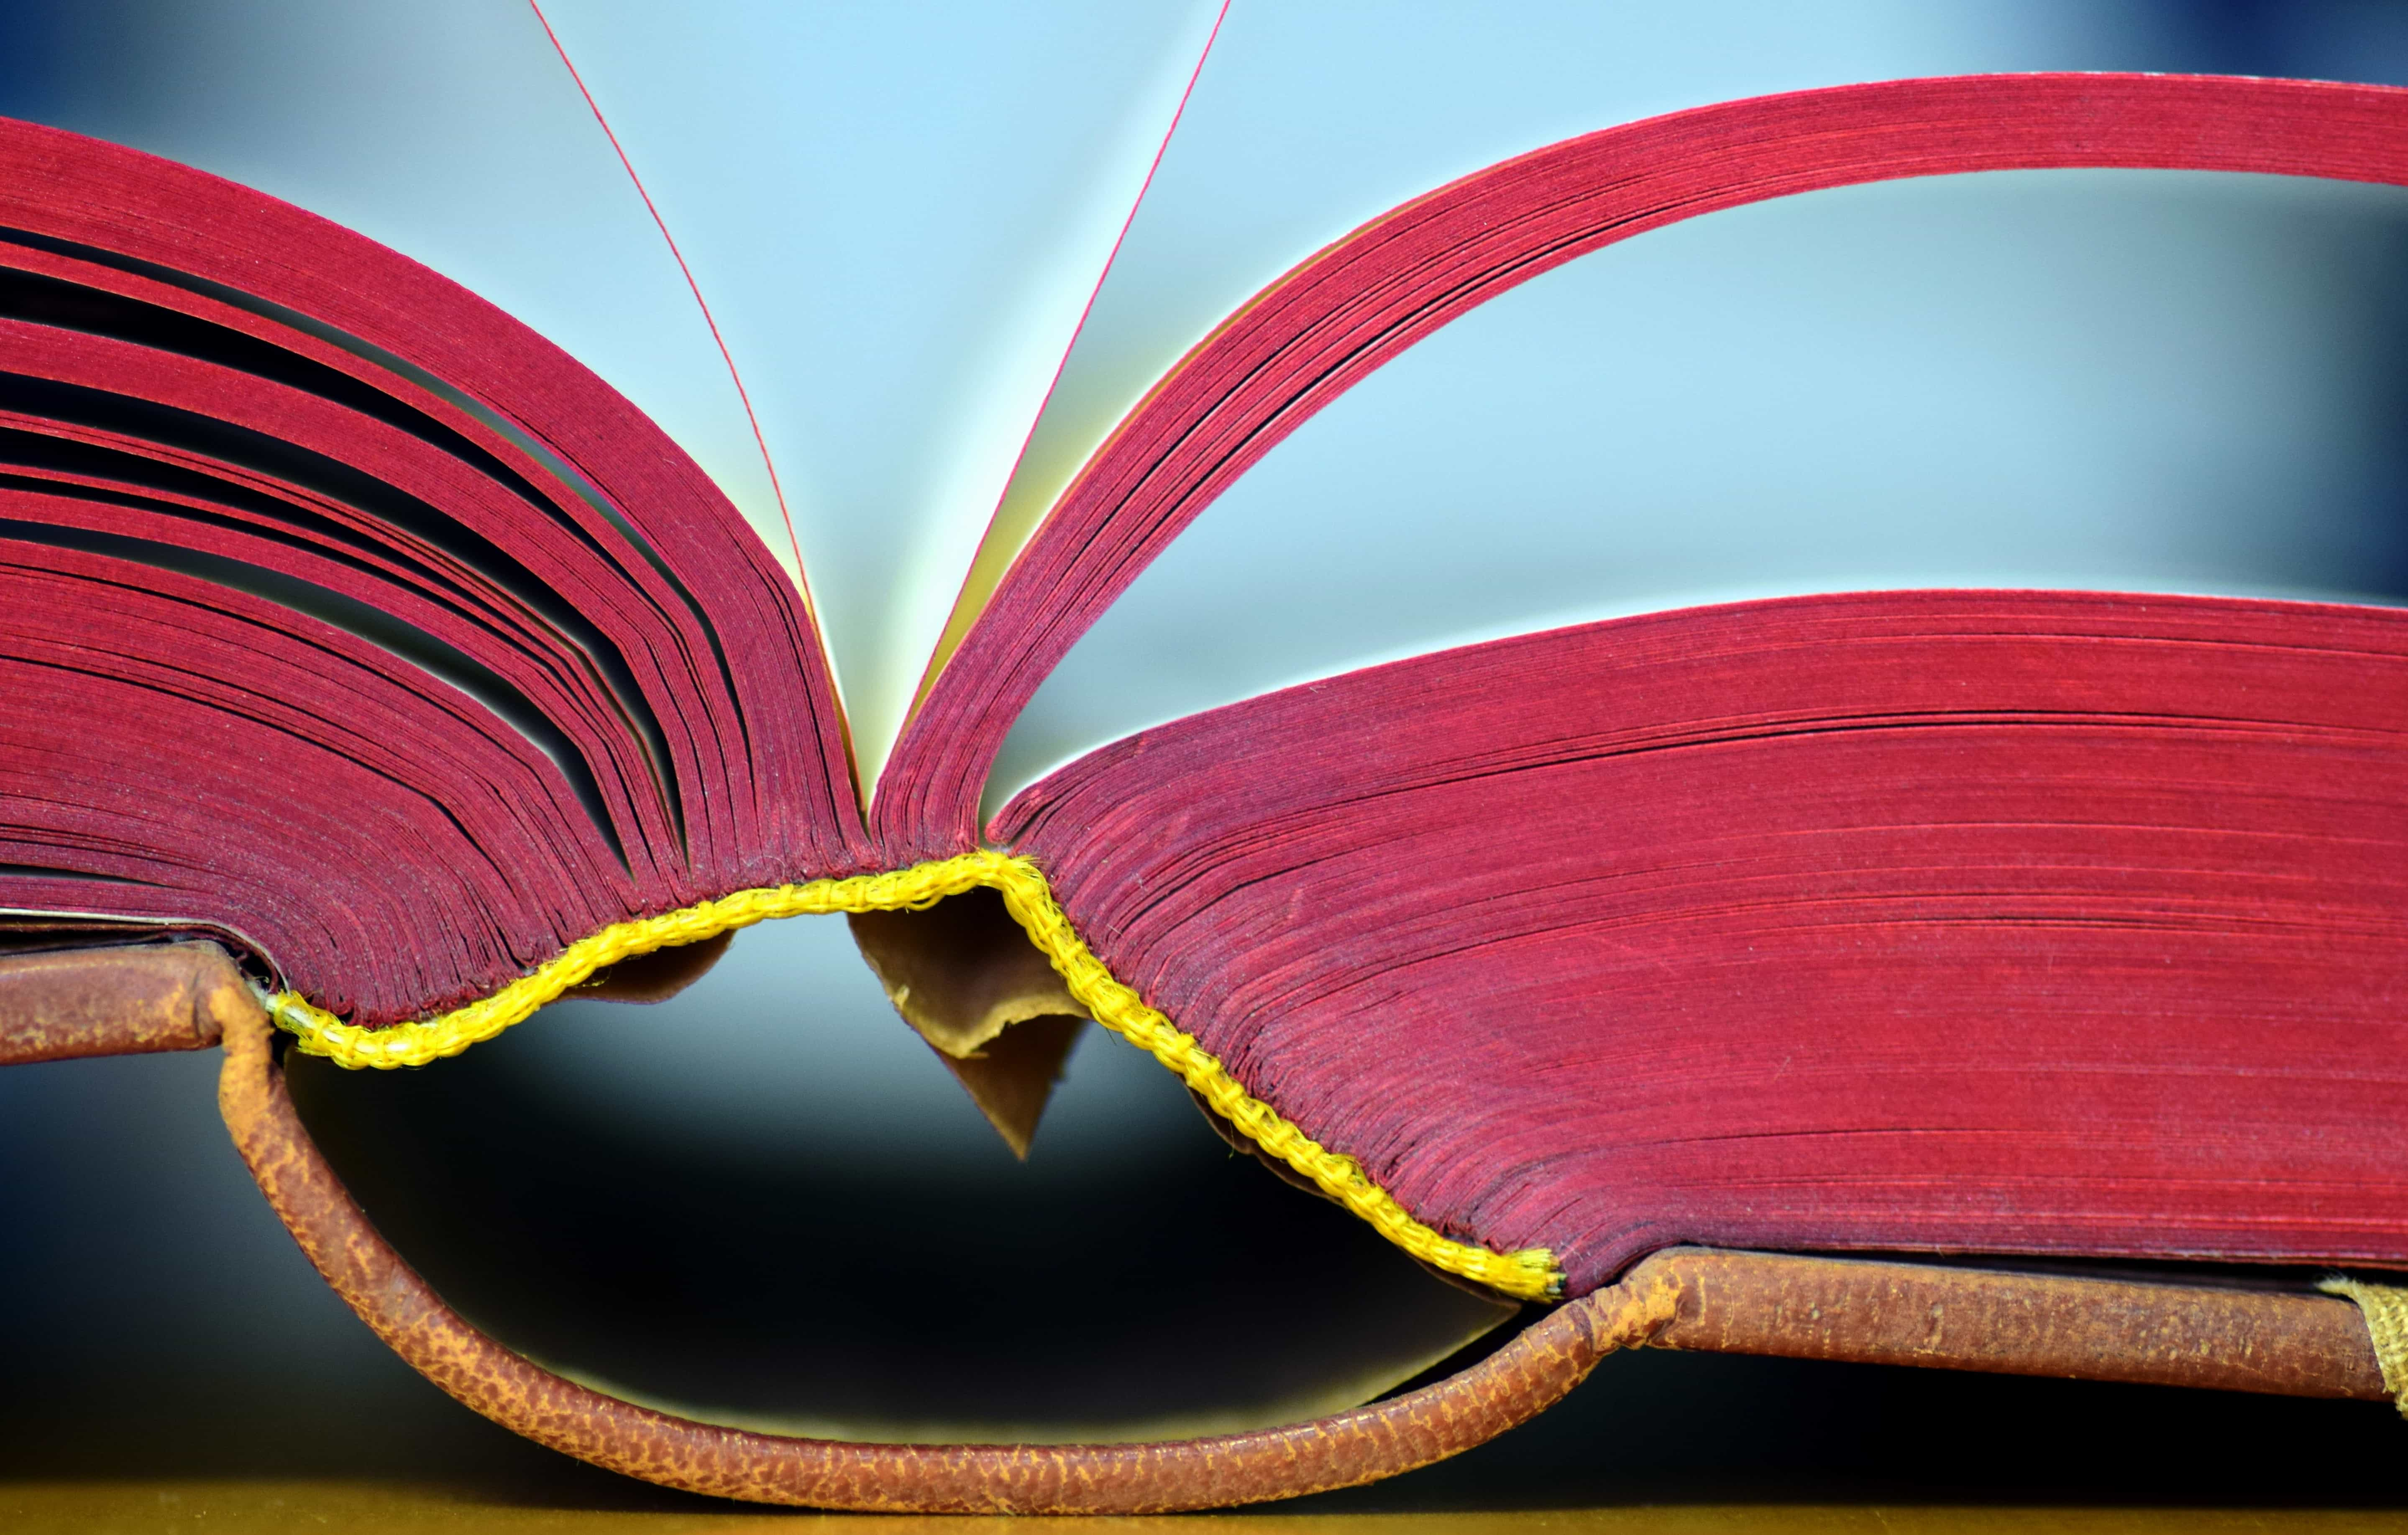 free picture  book  learning  red  paper  macro  object  detail